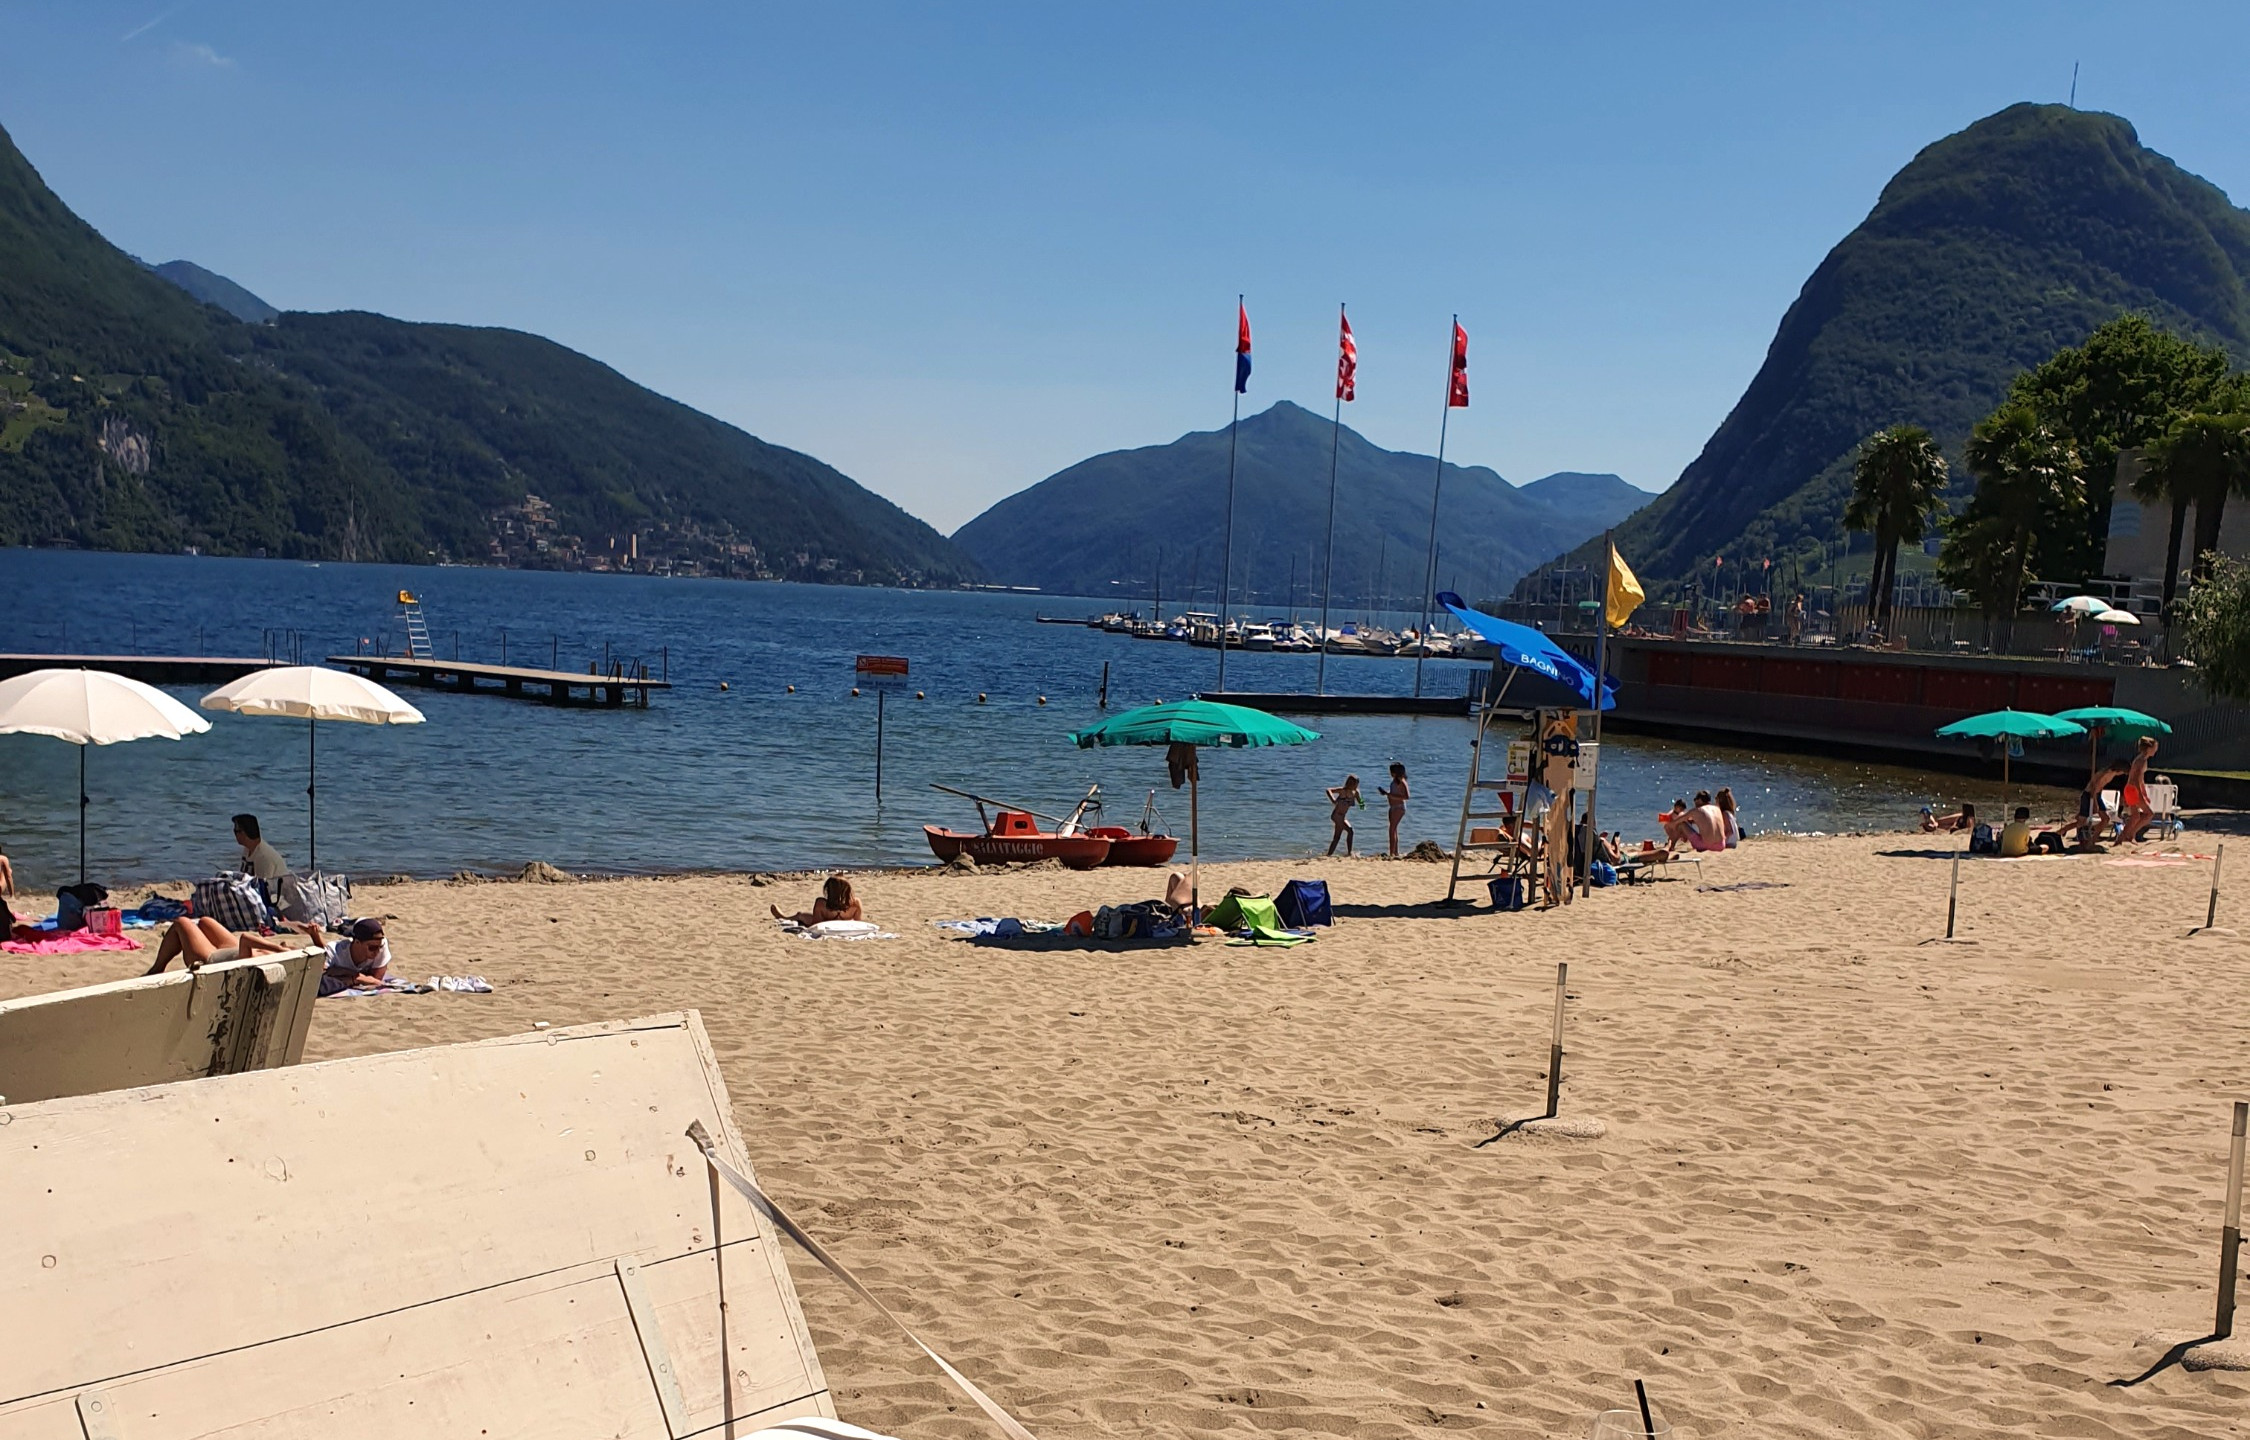 Lido di Lugano - Swiss Family Travel Blog - Weekend in Lugano Ticino - Activities and outings